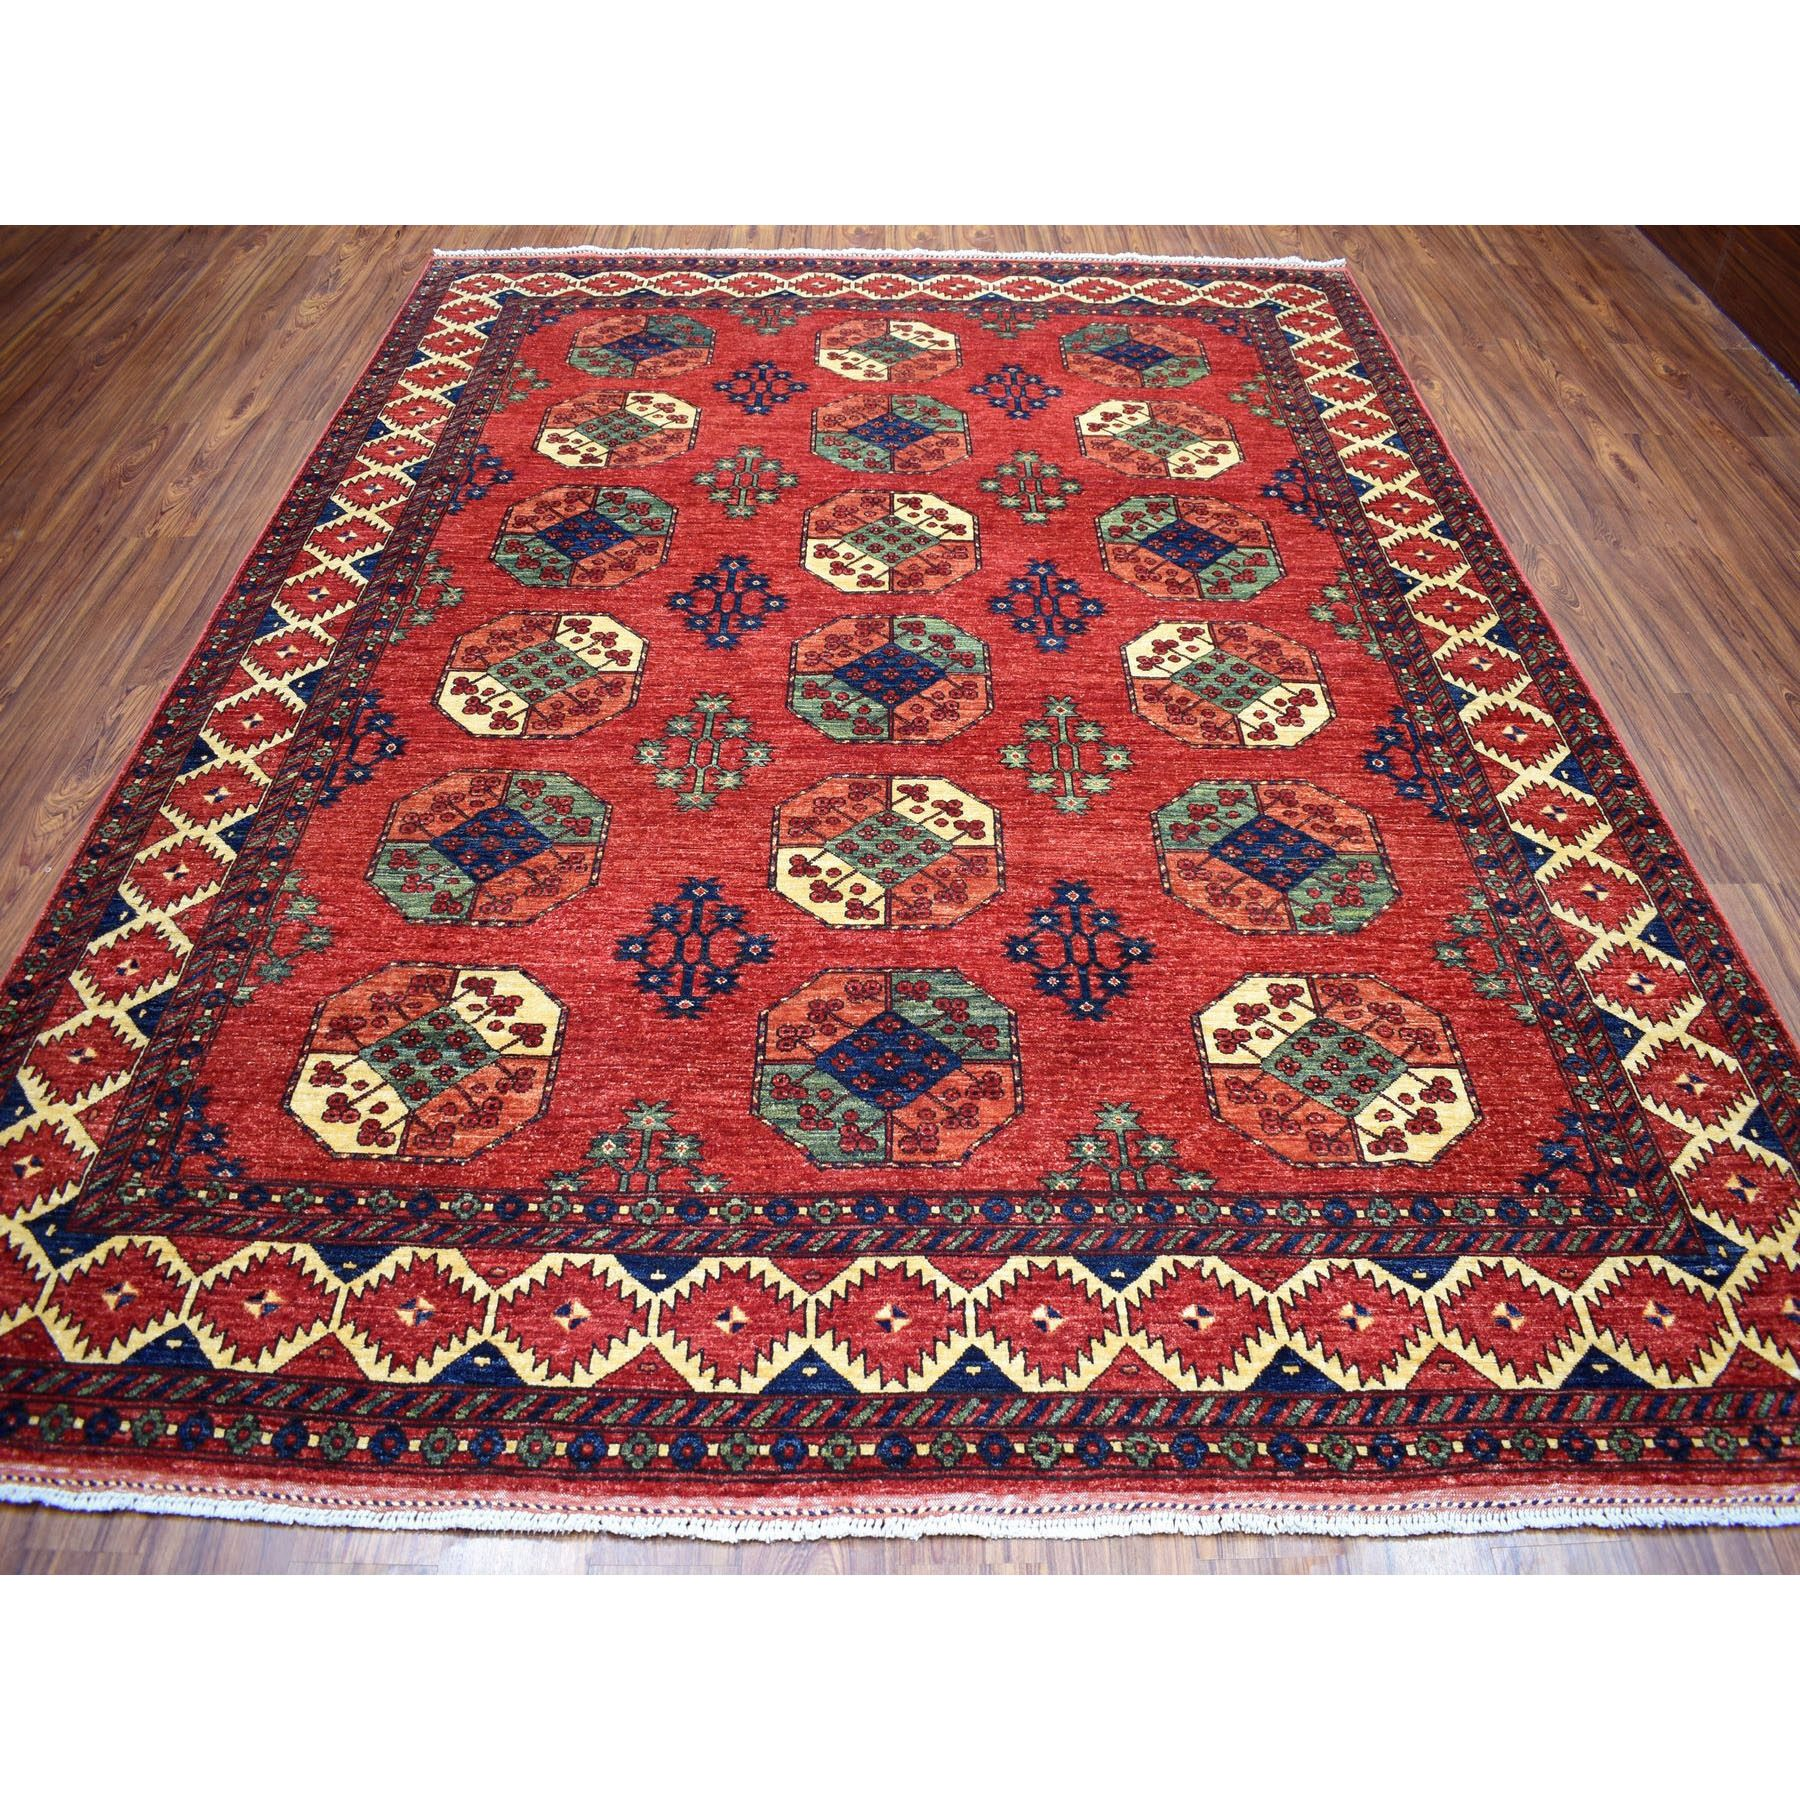 "8'1""x10' Afghan Ersari With Elephant Feet Design Vegetable Dyes Pure Wool Hand Knotted Oriental Rug"